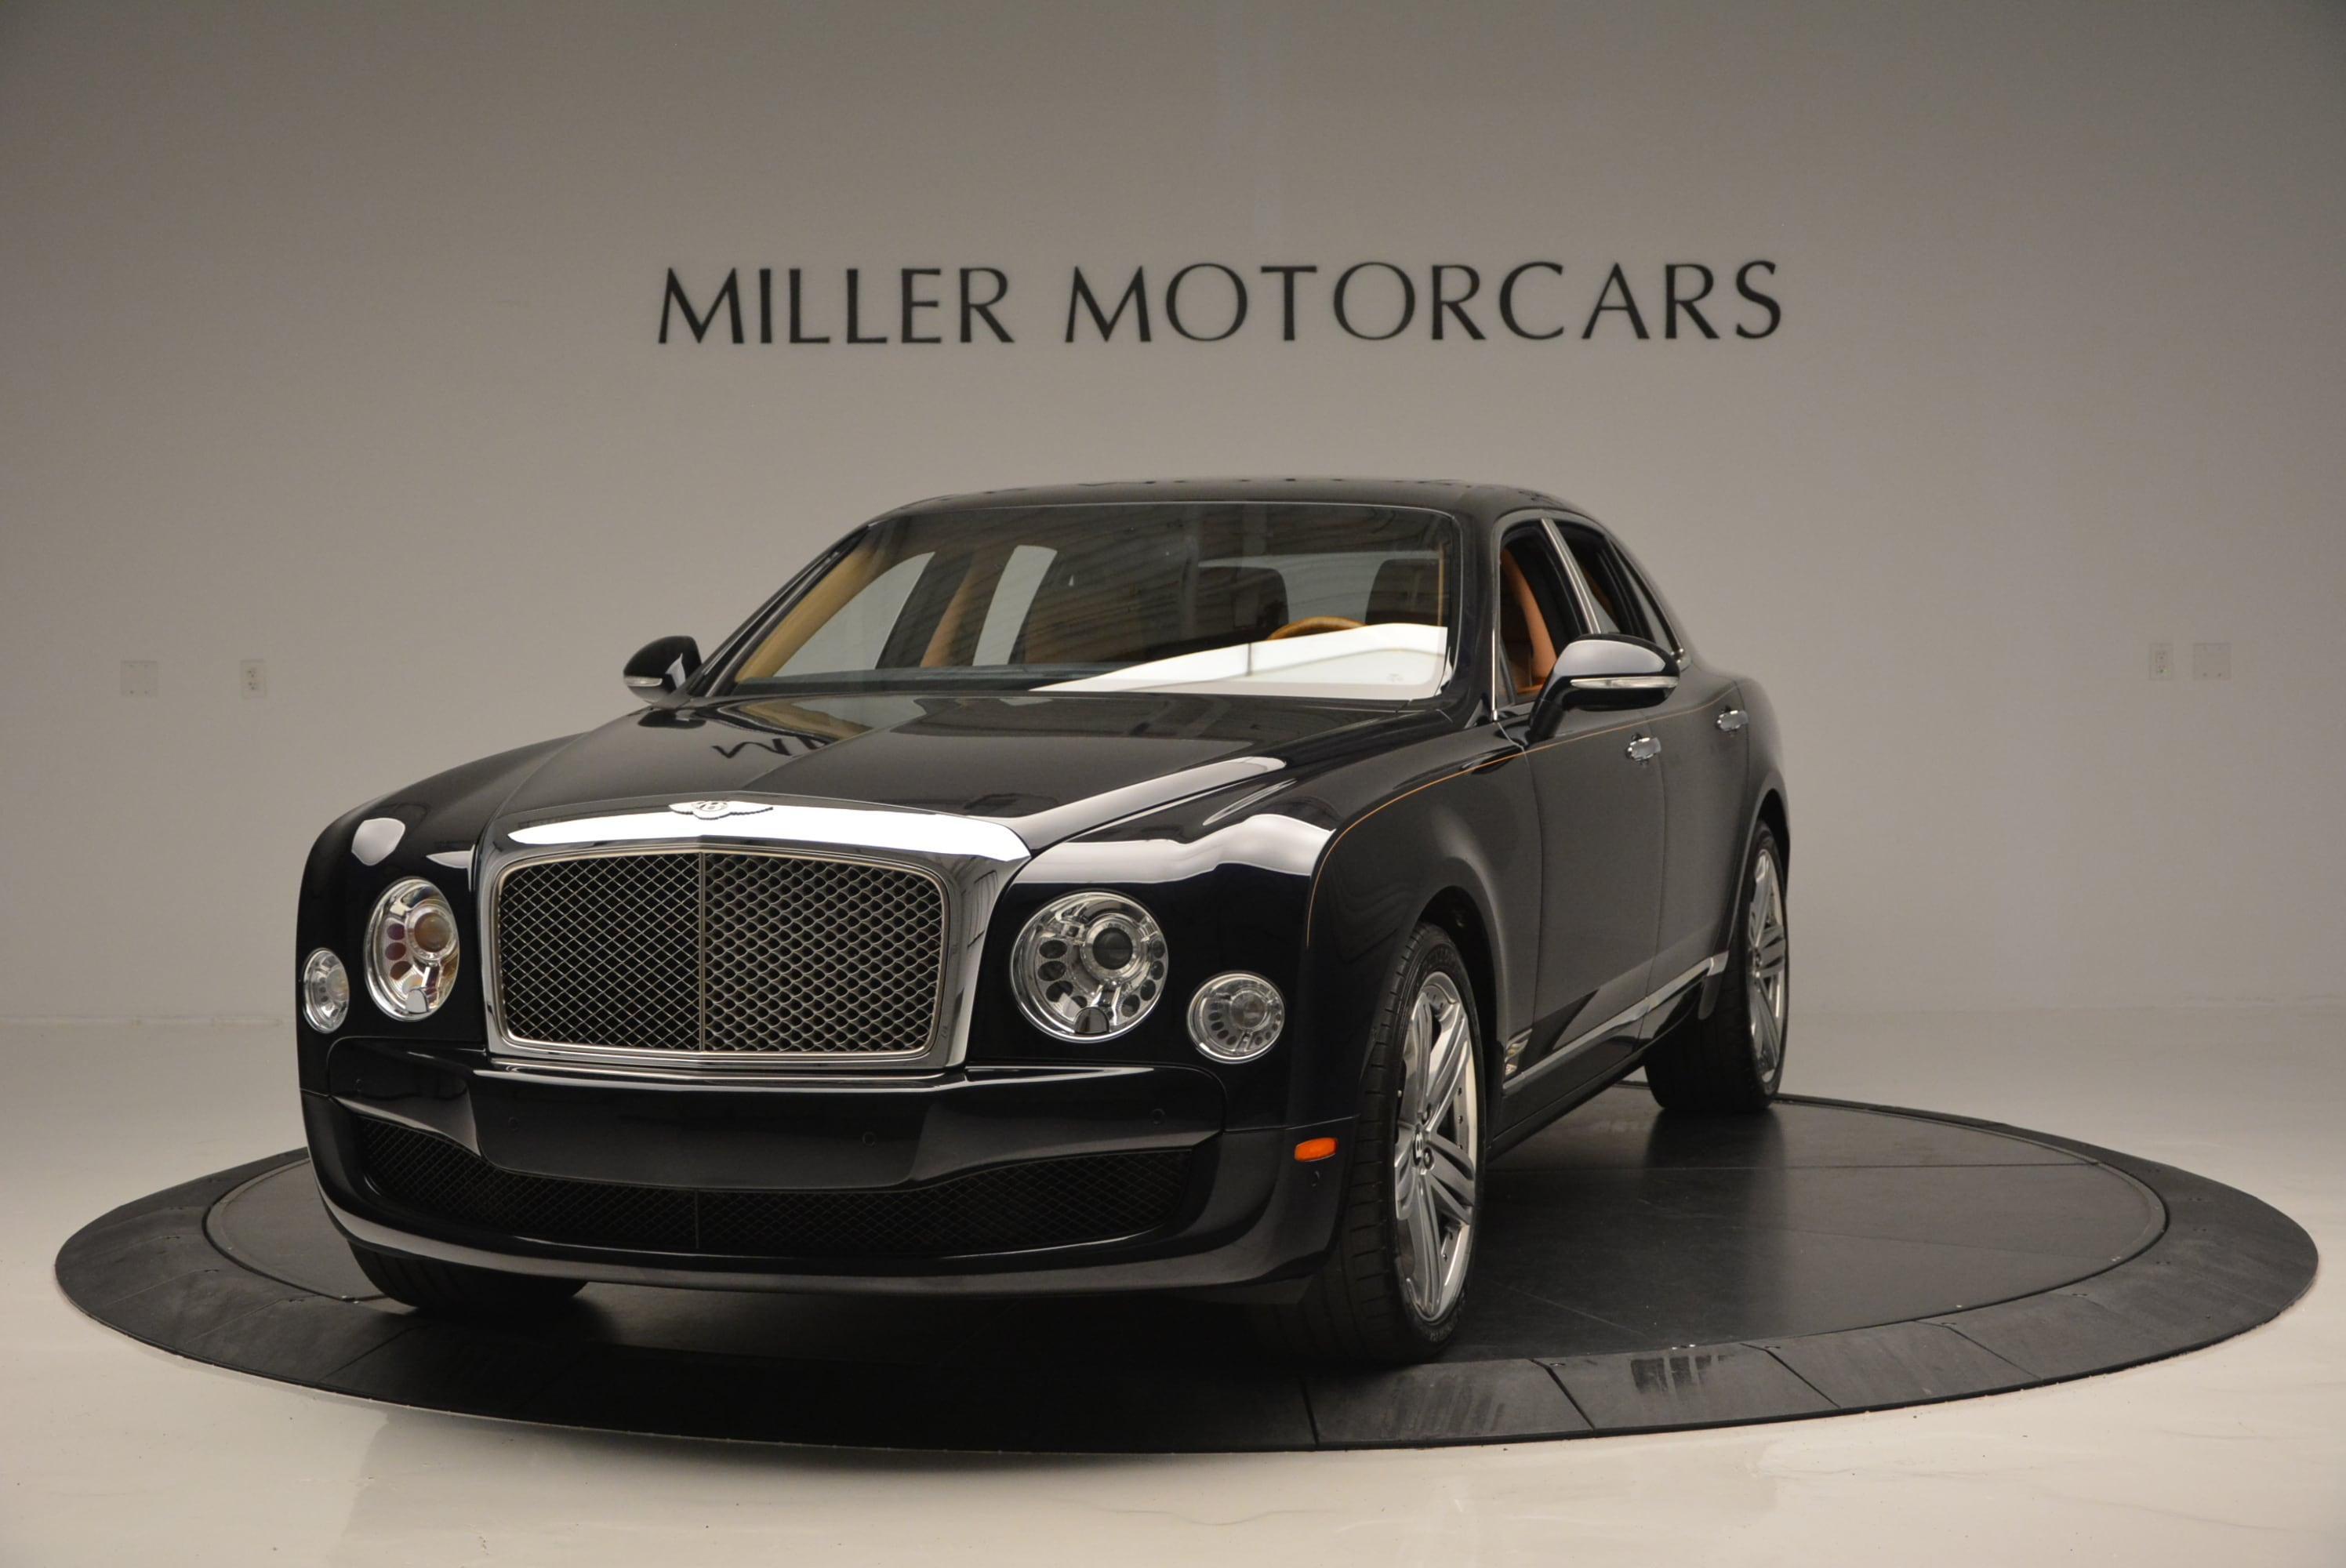 2013 Bentley Mulsanne Le Mans Edition- Number 1 of 48 Sedan